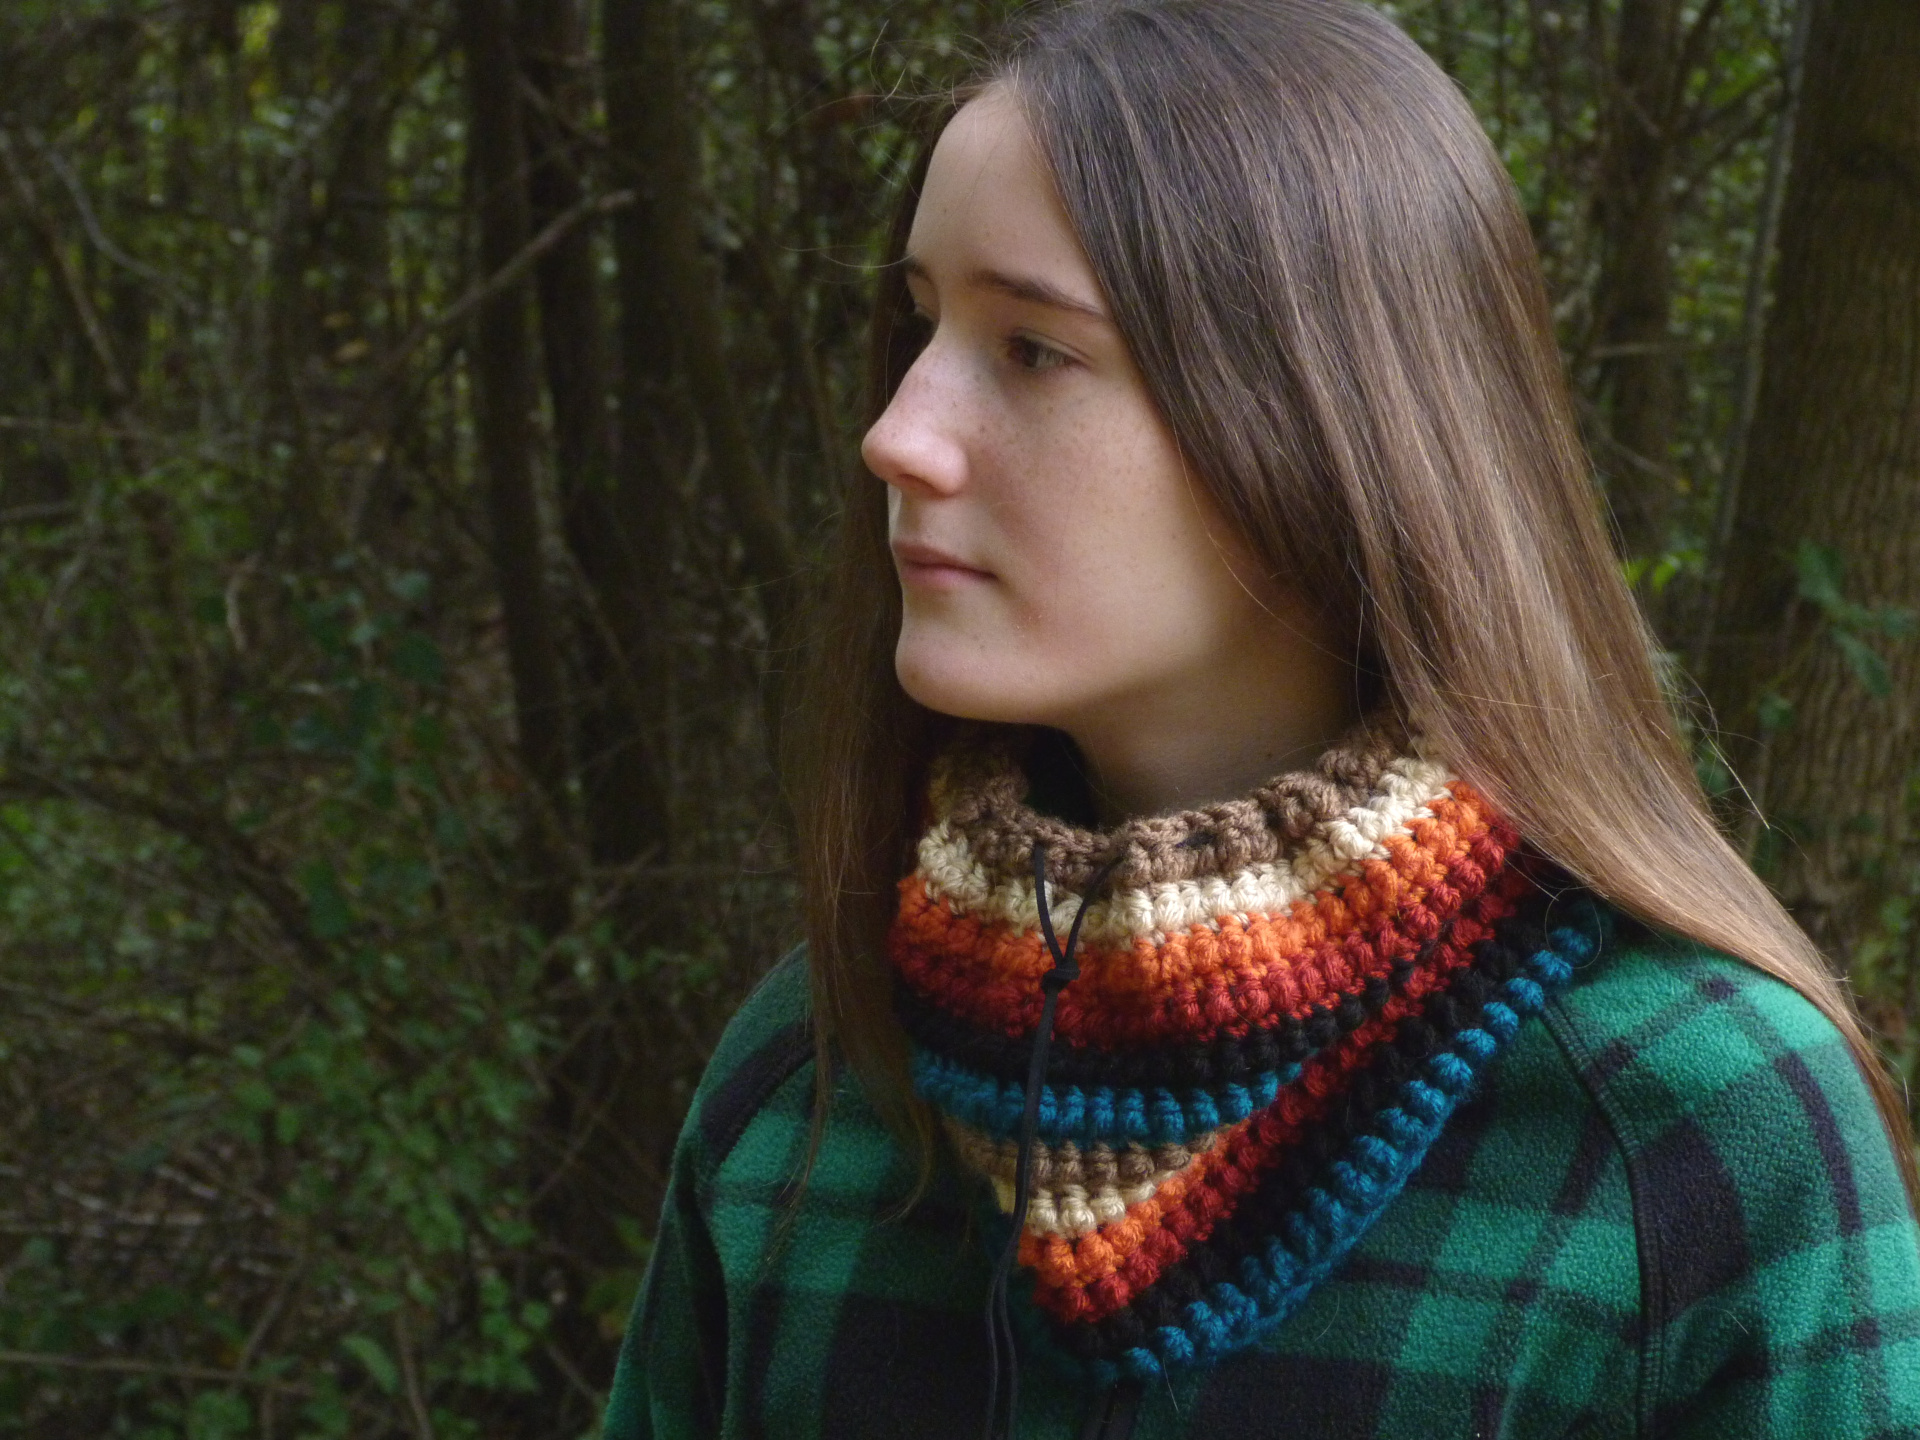 Crochet Pattern: Southwestern Striped Cowl